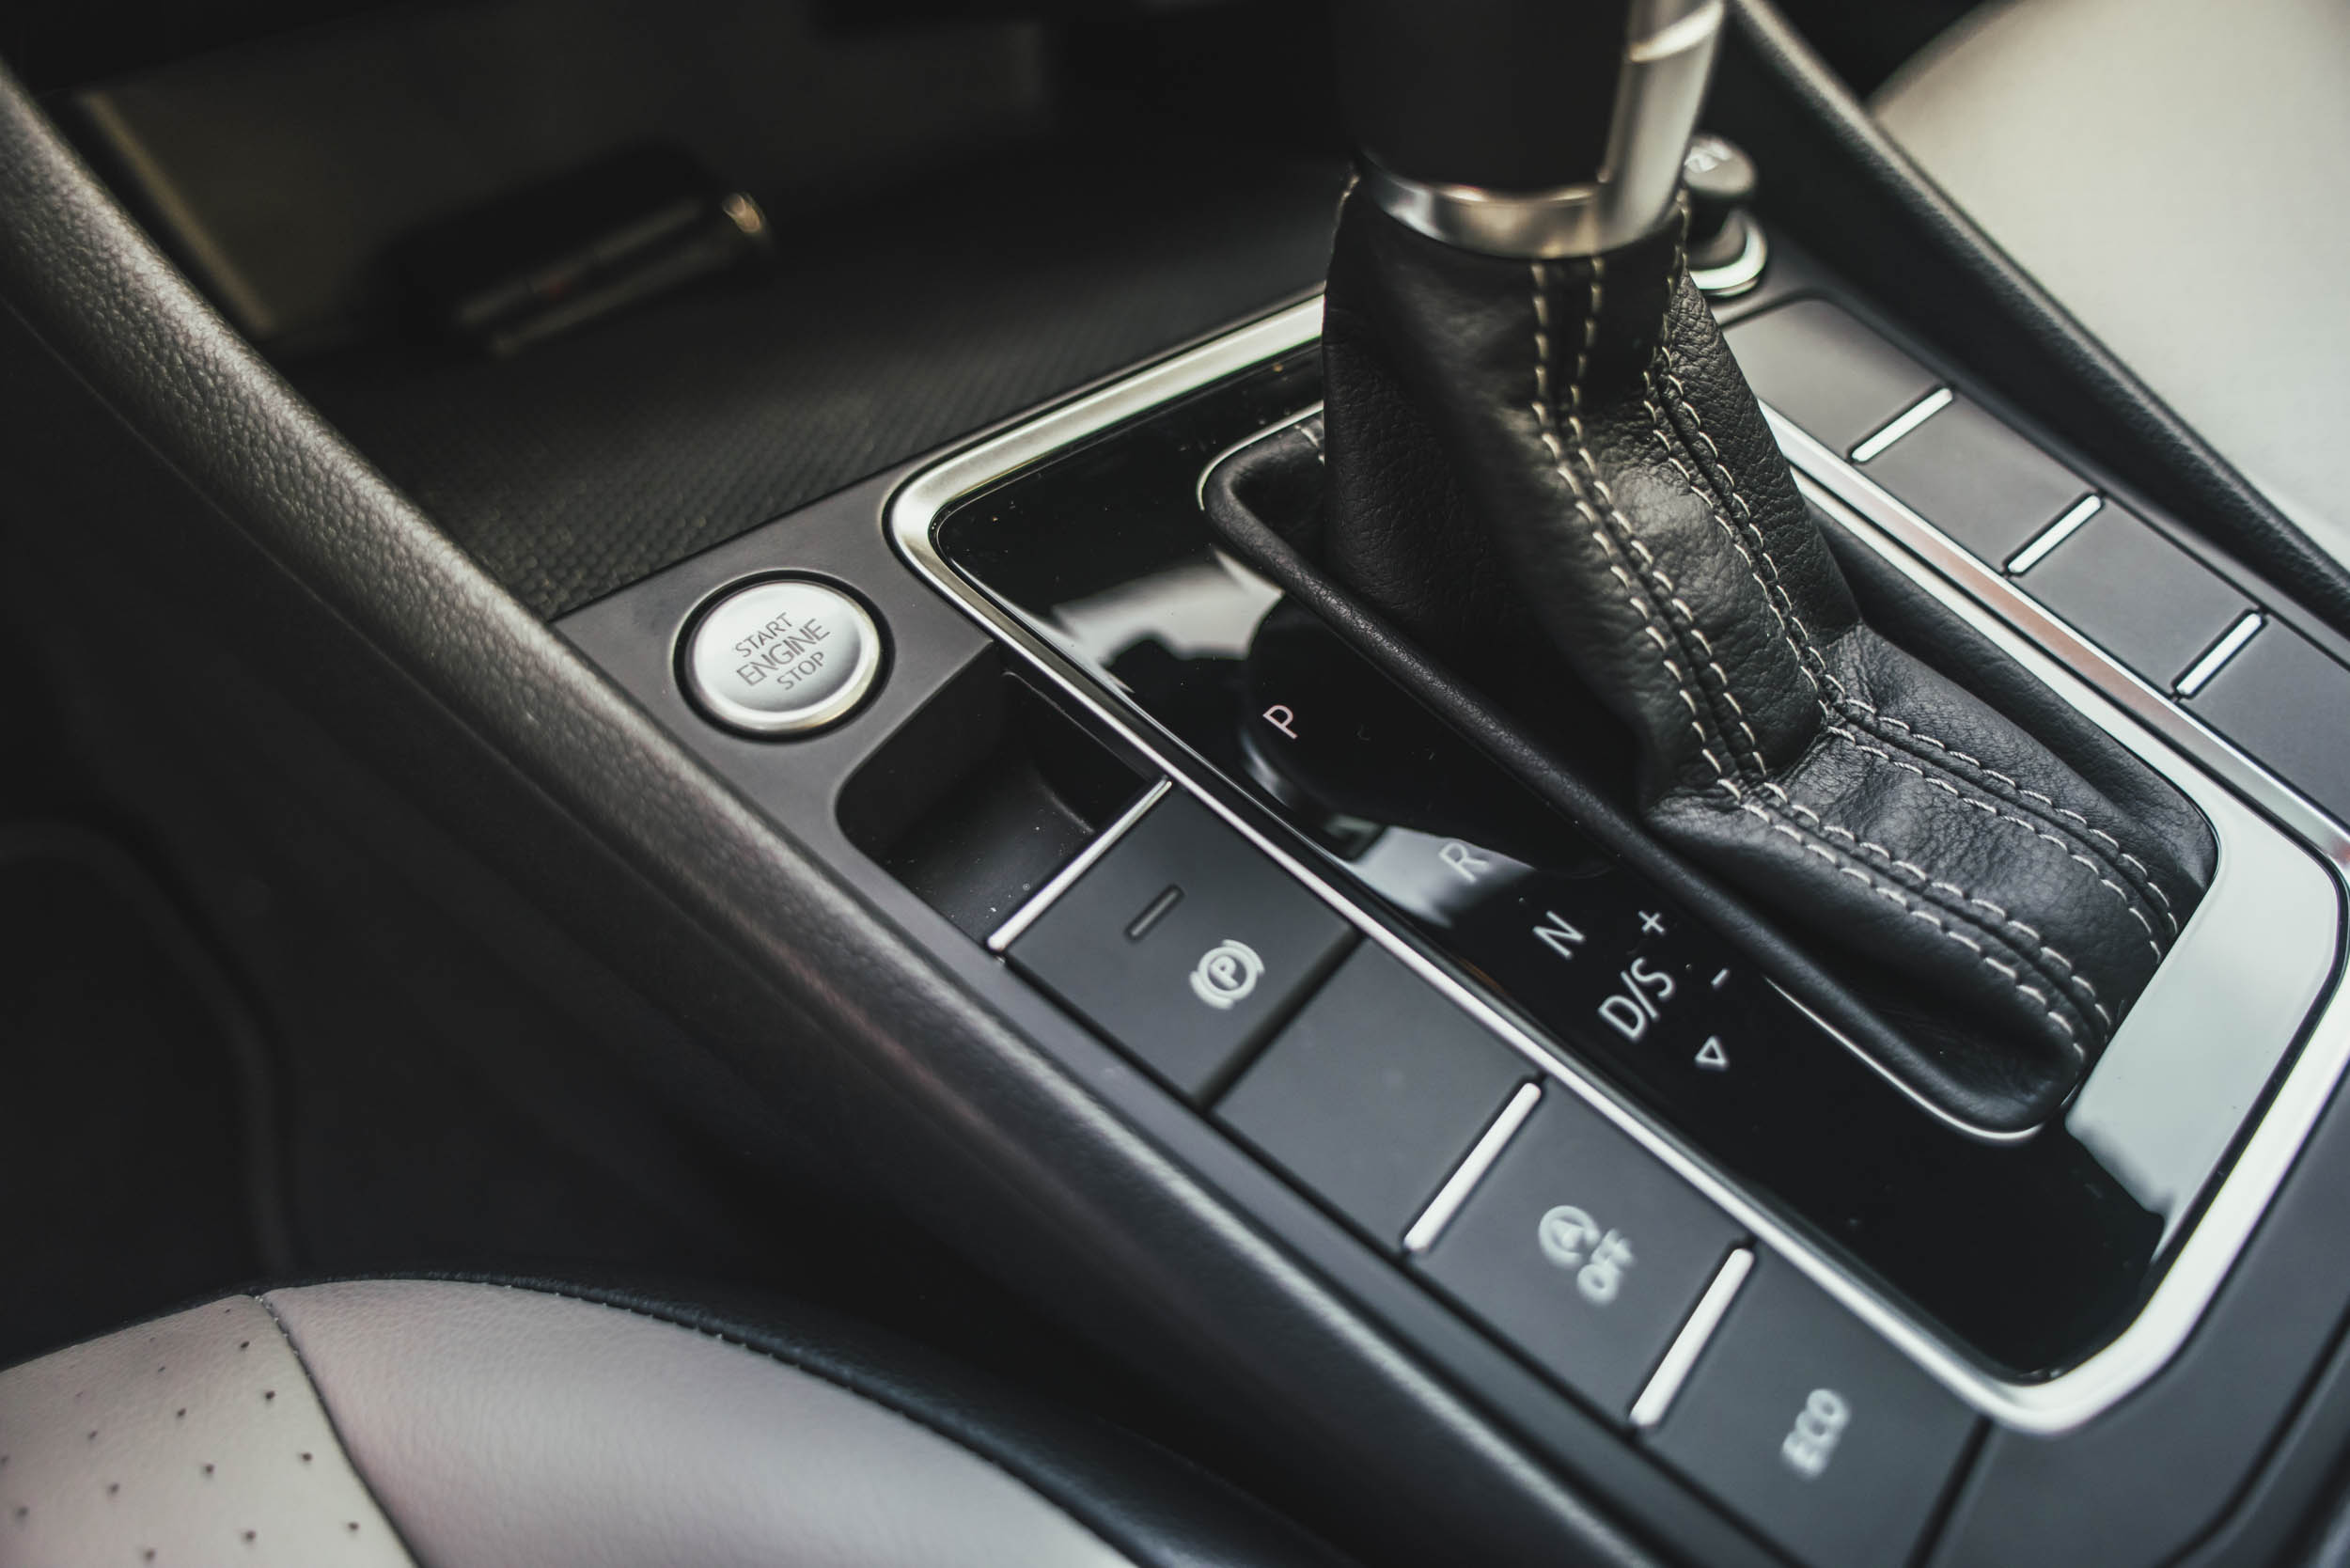 volkswagen jetta r-line close-up on gearshift